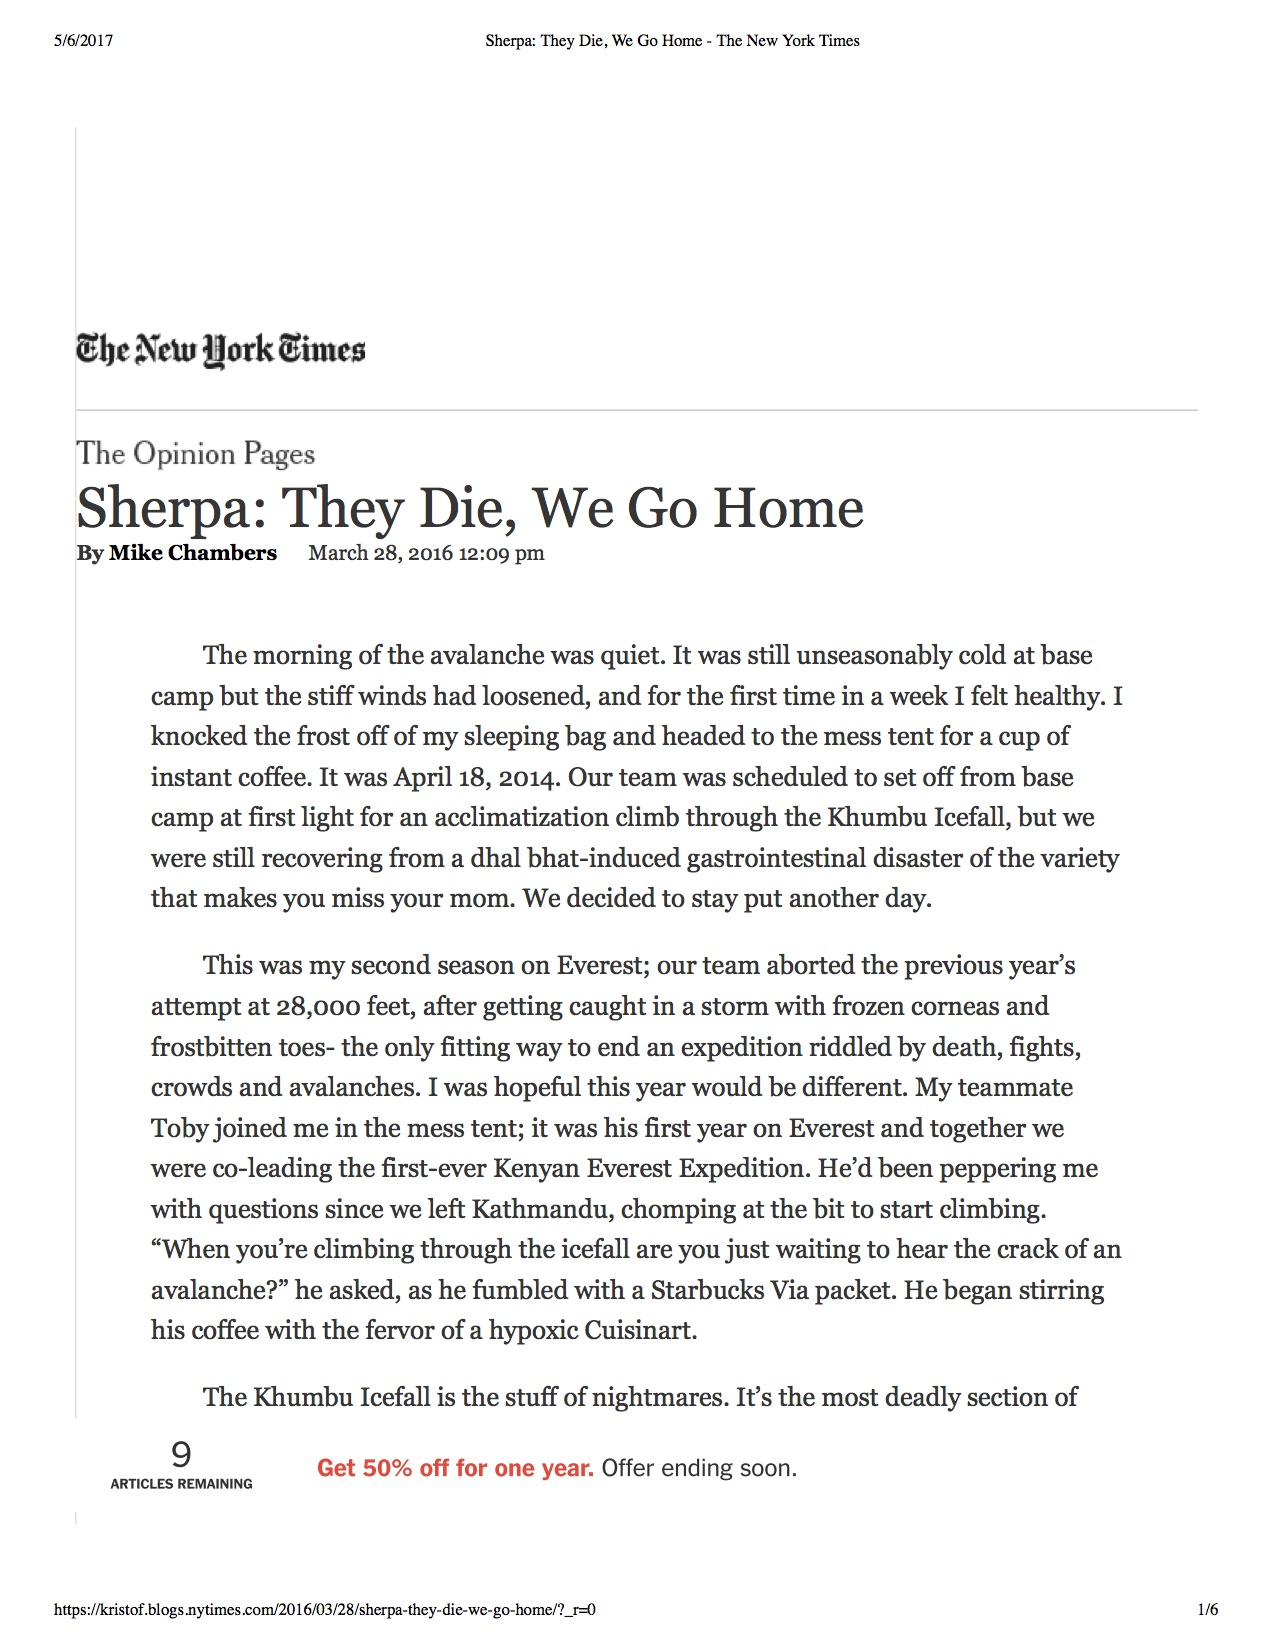 Sherpa- They Die, We Go Home - The New York Times.jpg